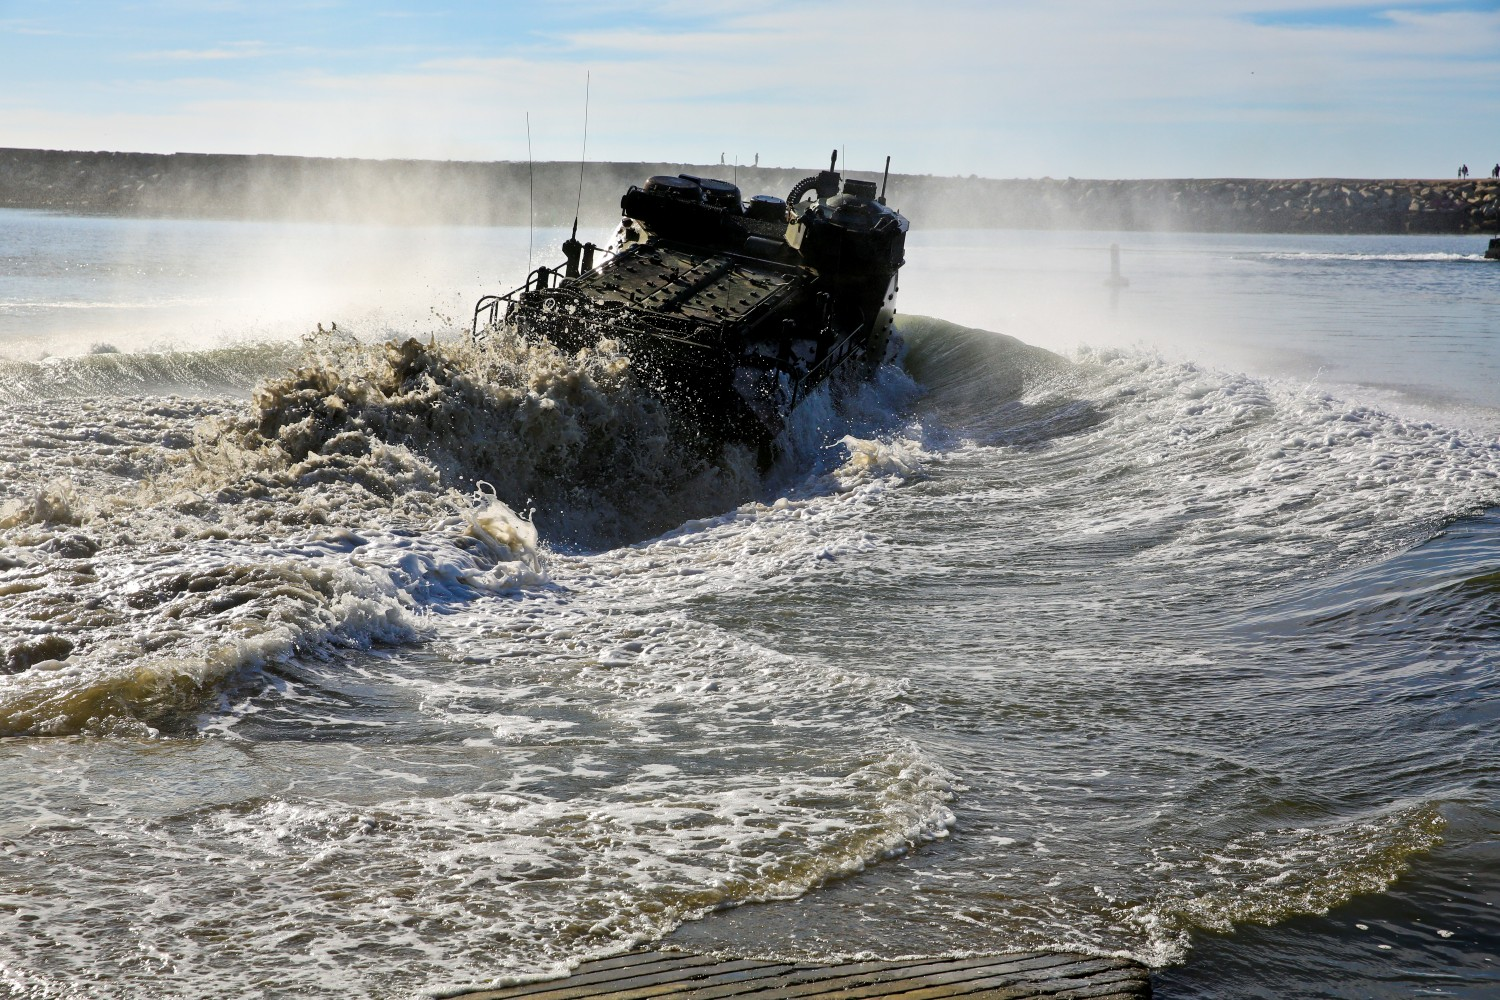 An AAV-7 Assault Amphibious Vehicle goes into the water while conducting a splash demonstration during Exercise Iron Fist 2014 at Camp Pendleton, Calif. US Marine Corps Photo